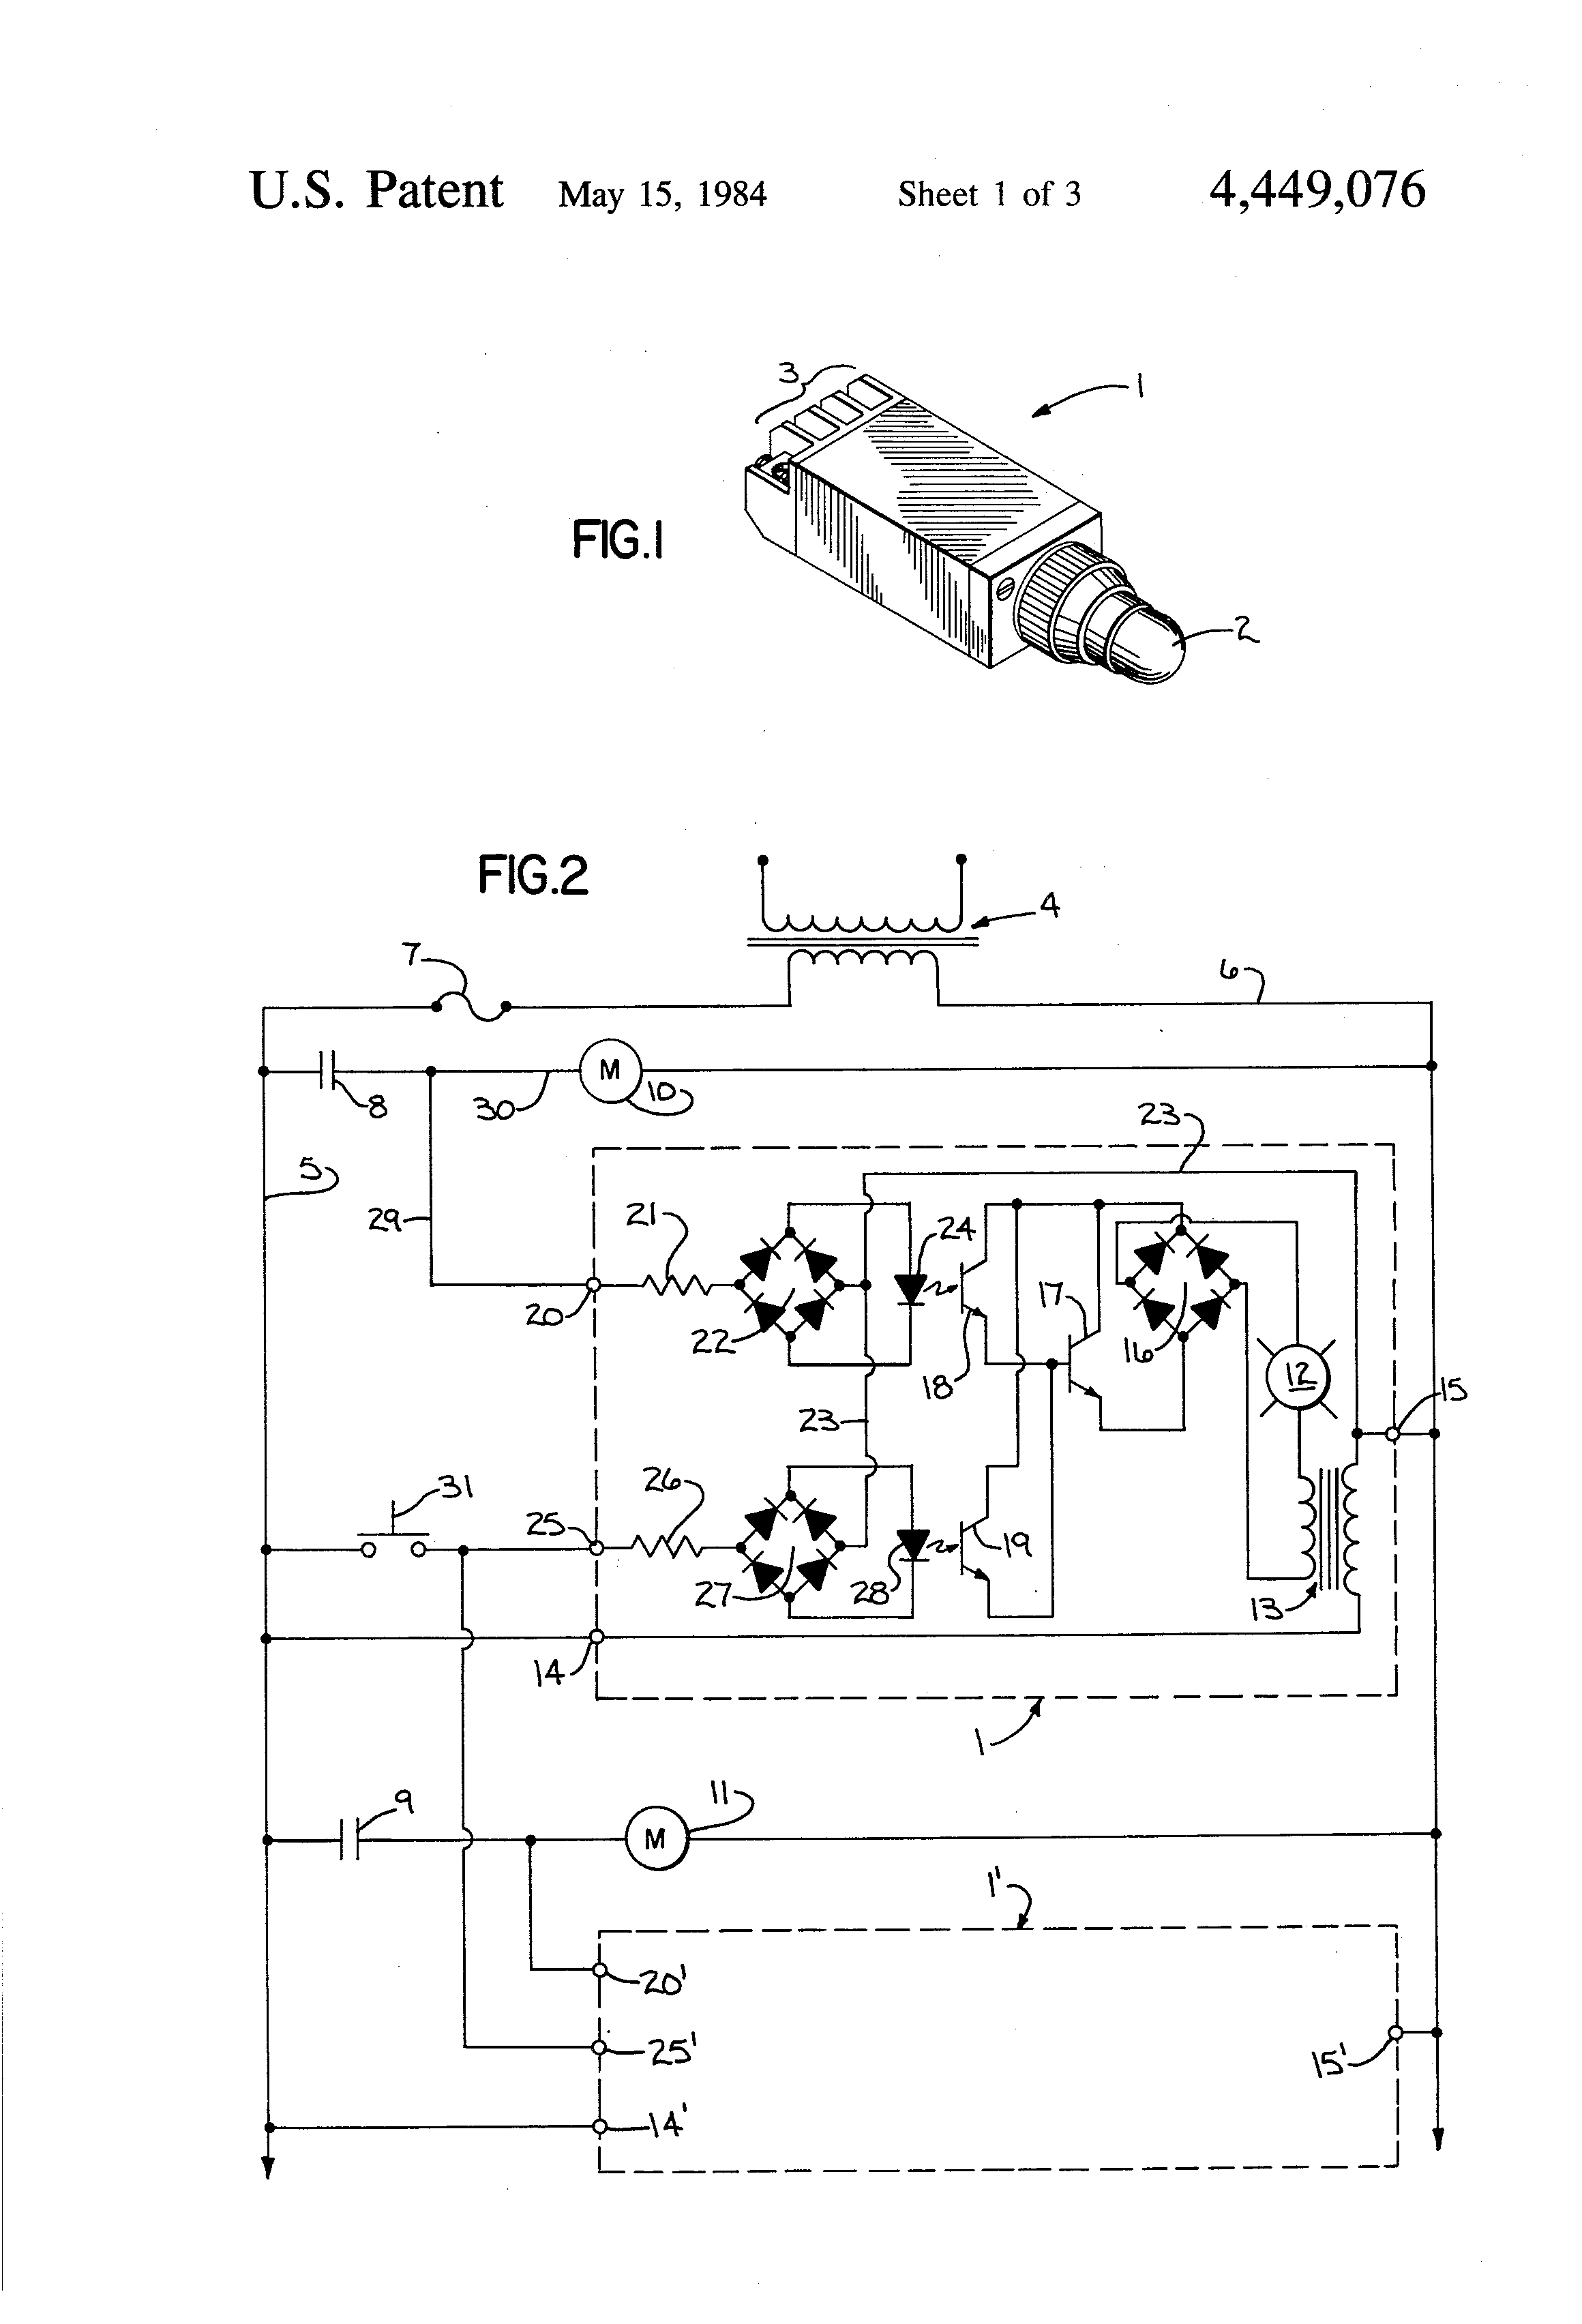 allen bradley safety wiring diagrams typical plant cell diagram labeled nema 630 120v electrical switch